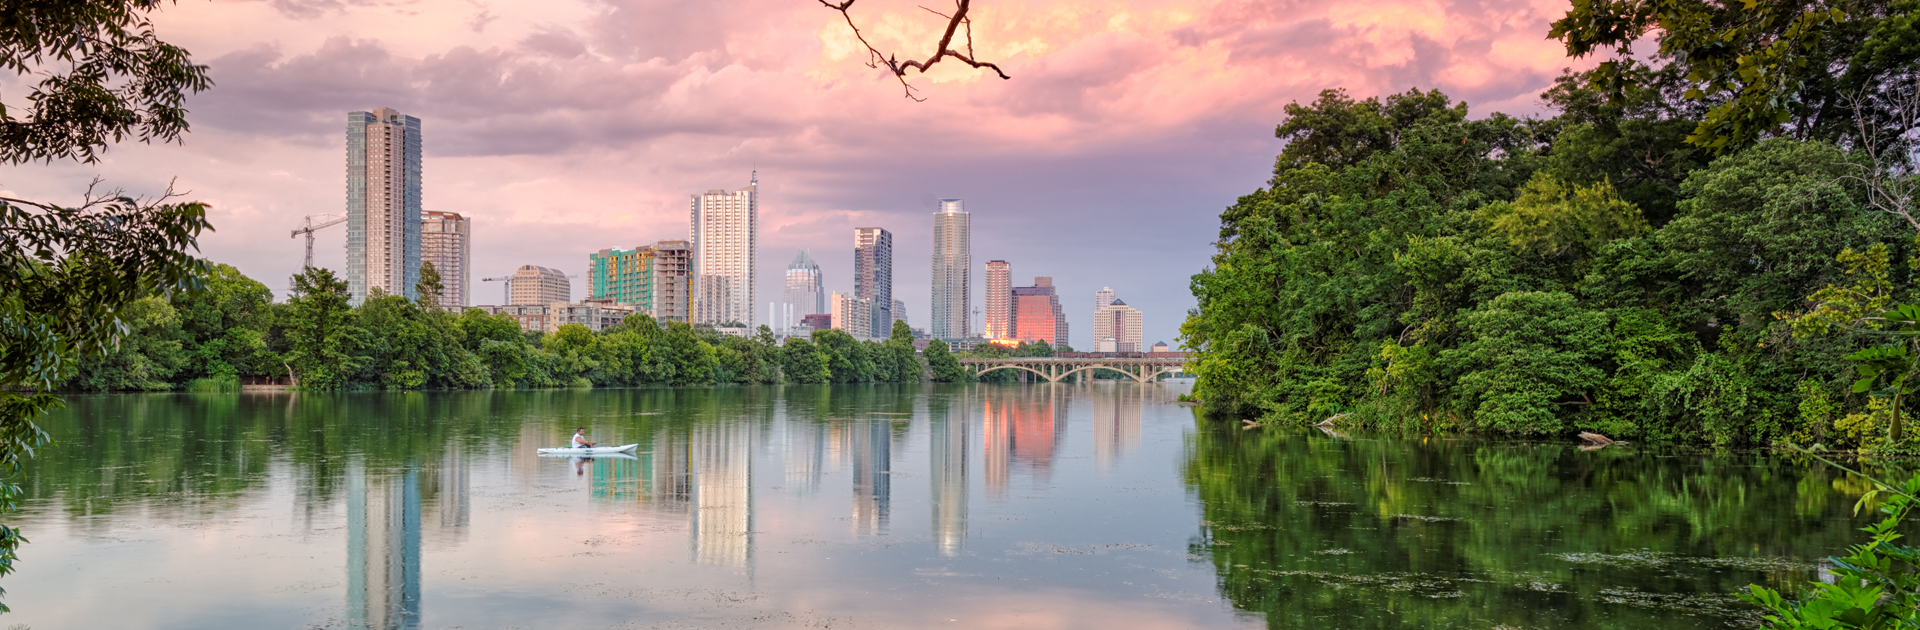 Austin City Skyline Viewed from River